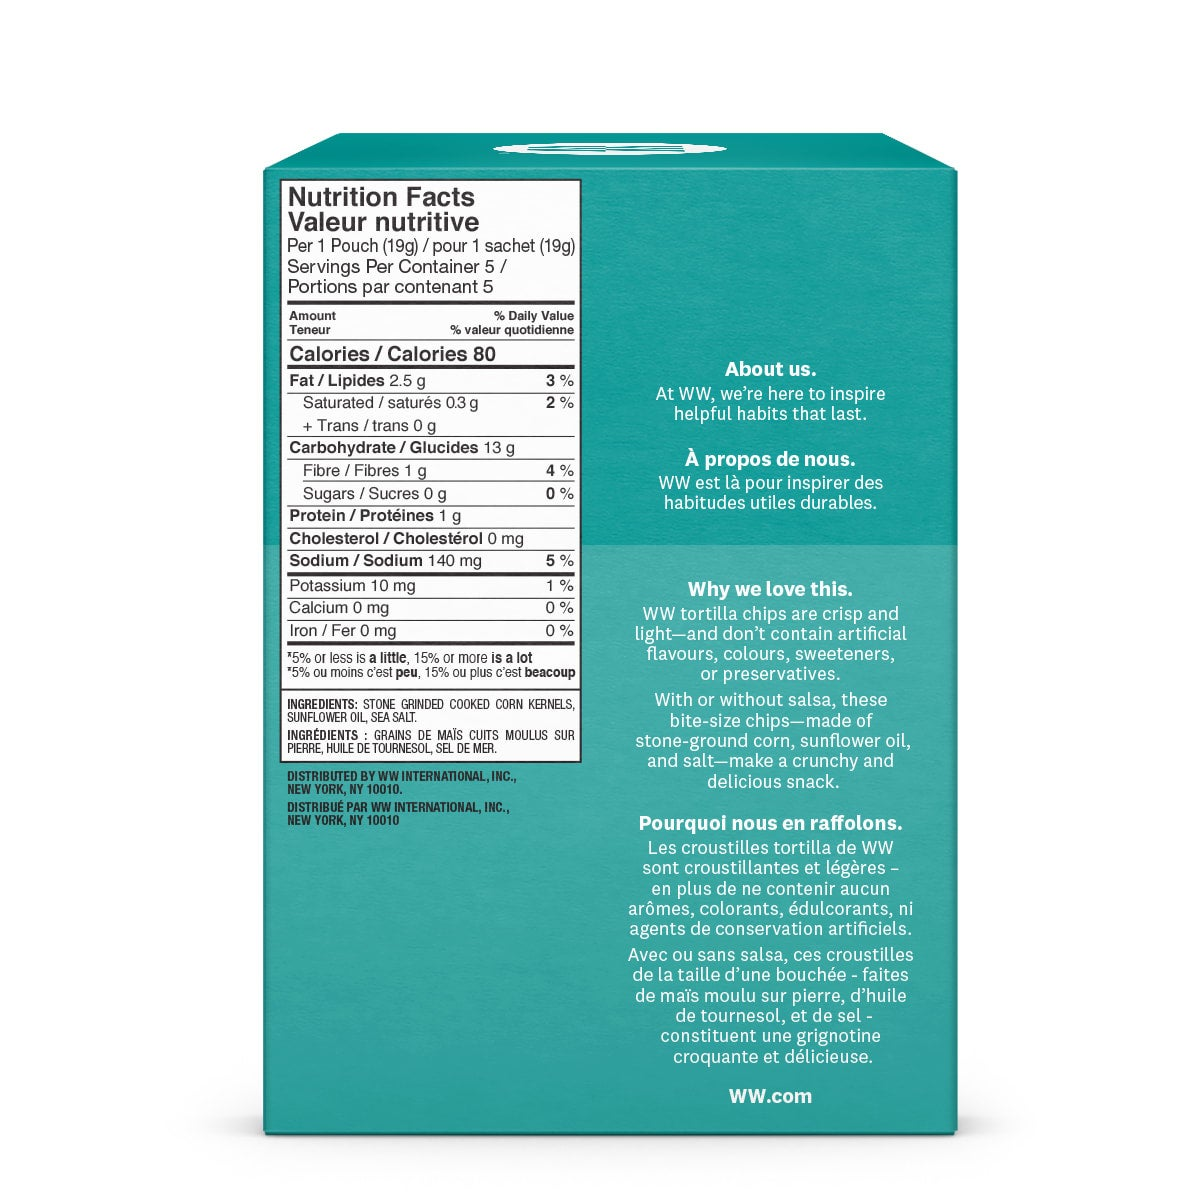 Sea Salt Tortilla Chips (3 Pack) - side 2 of the box